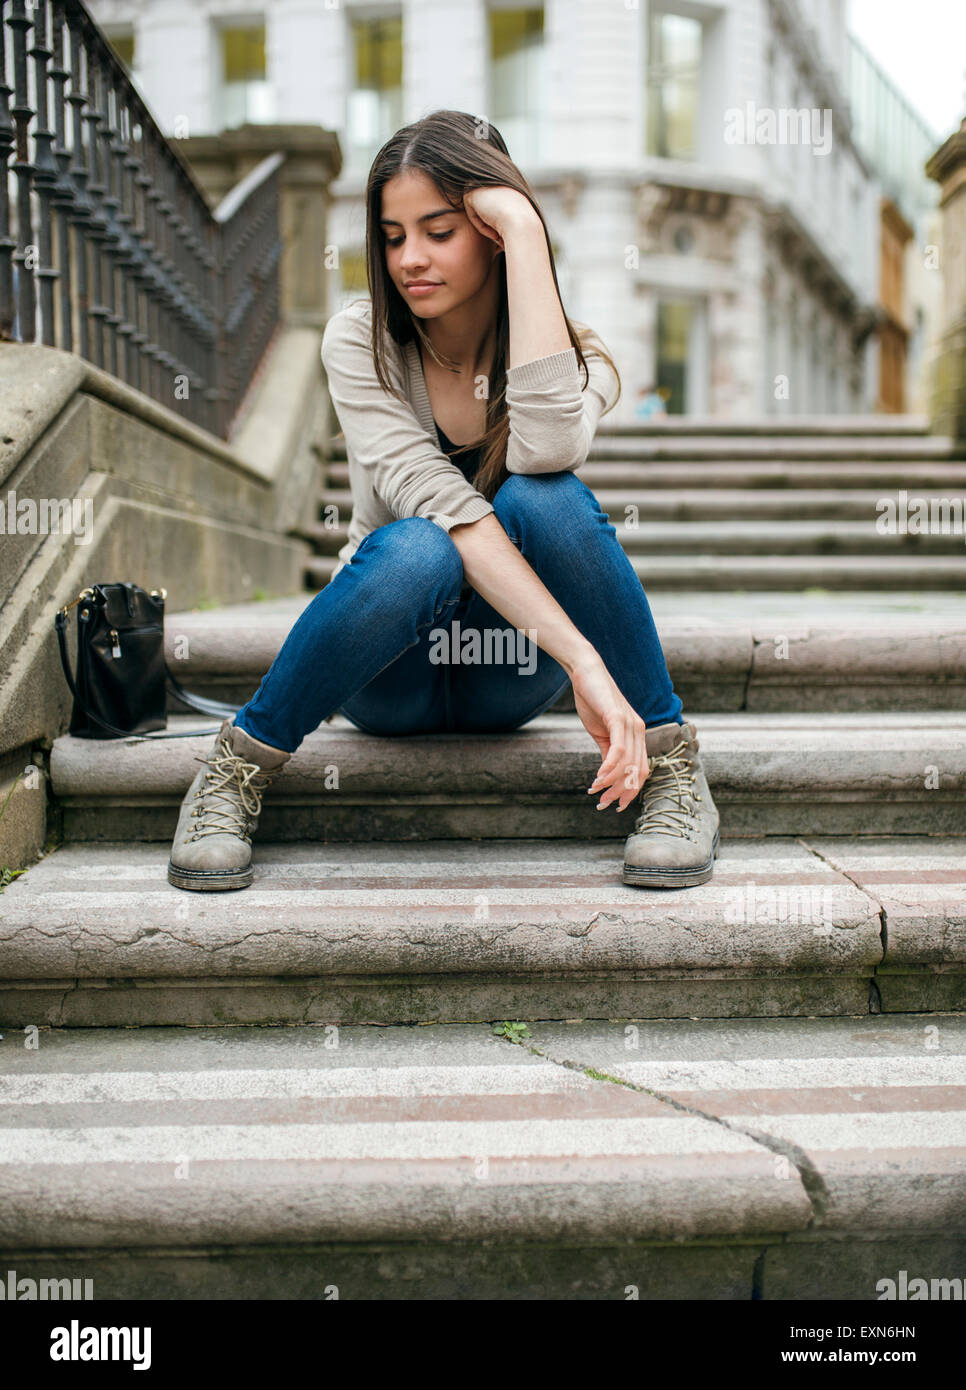 Spain, Oviedo, young woman sitting on stairs in the old town - Stock Image